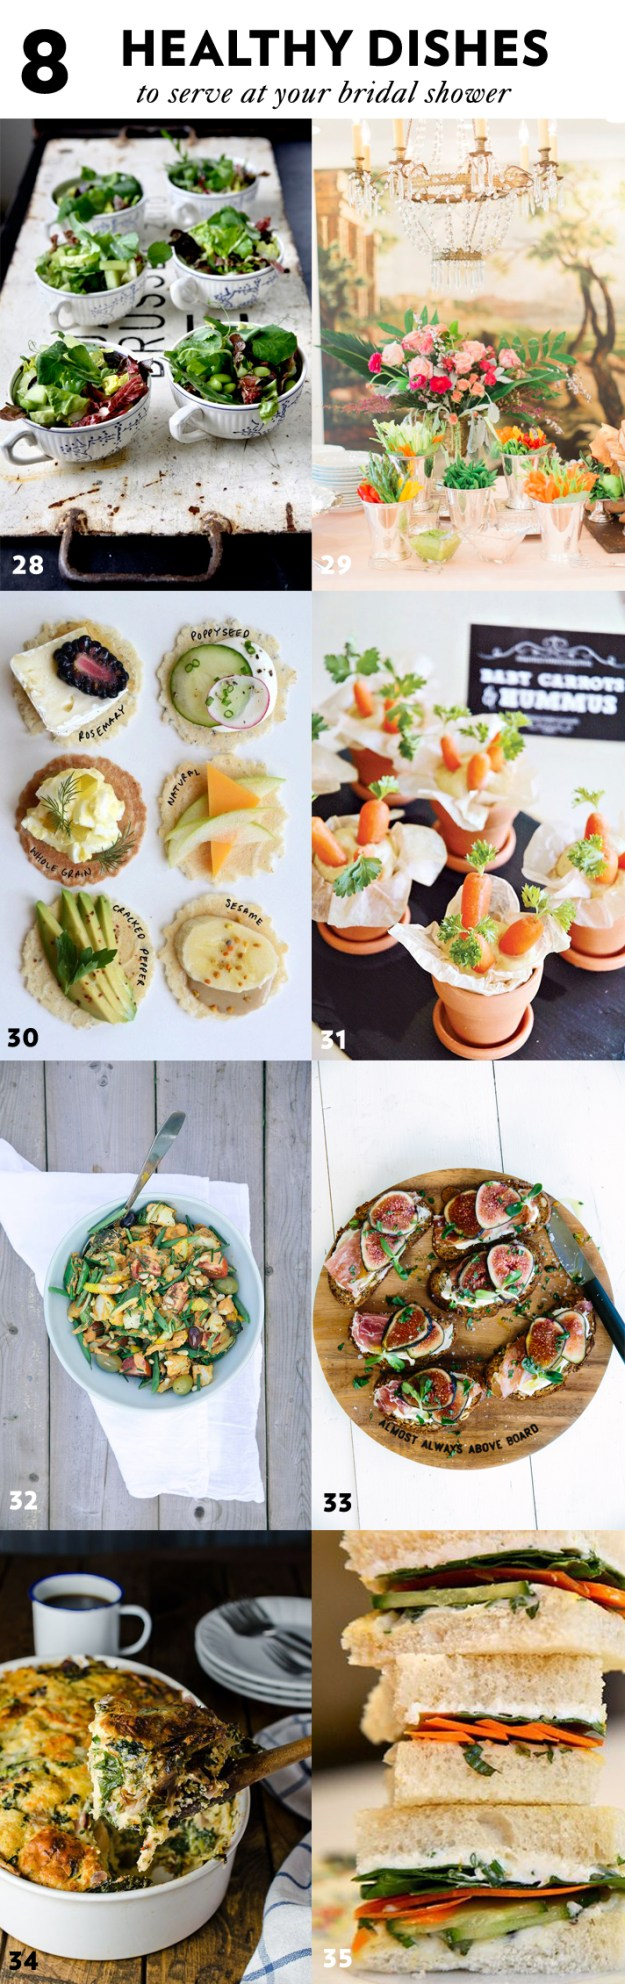 8 Healthy Dishes to Serve at Your Bridal Shower